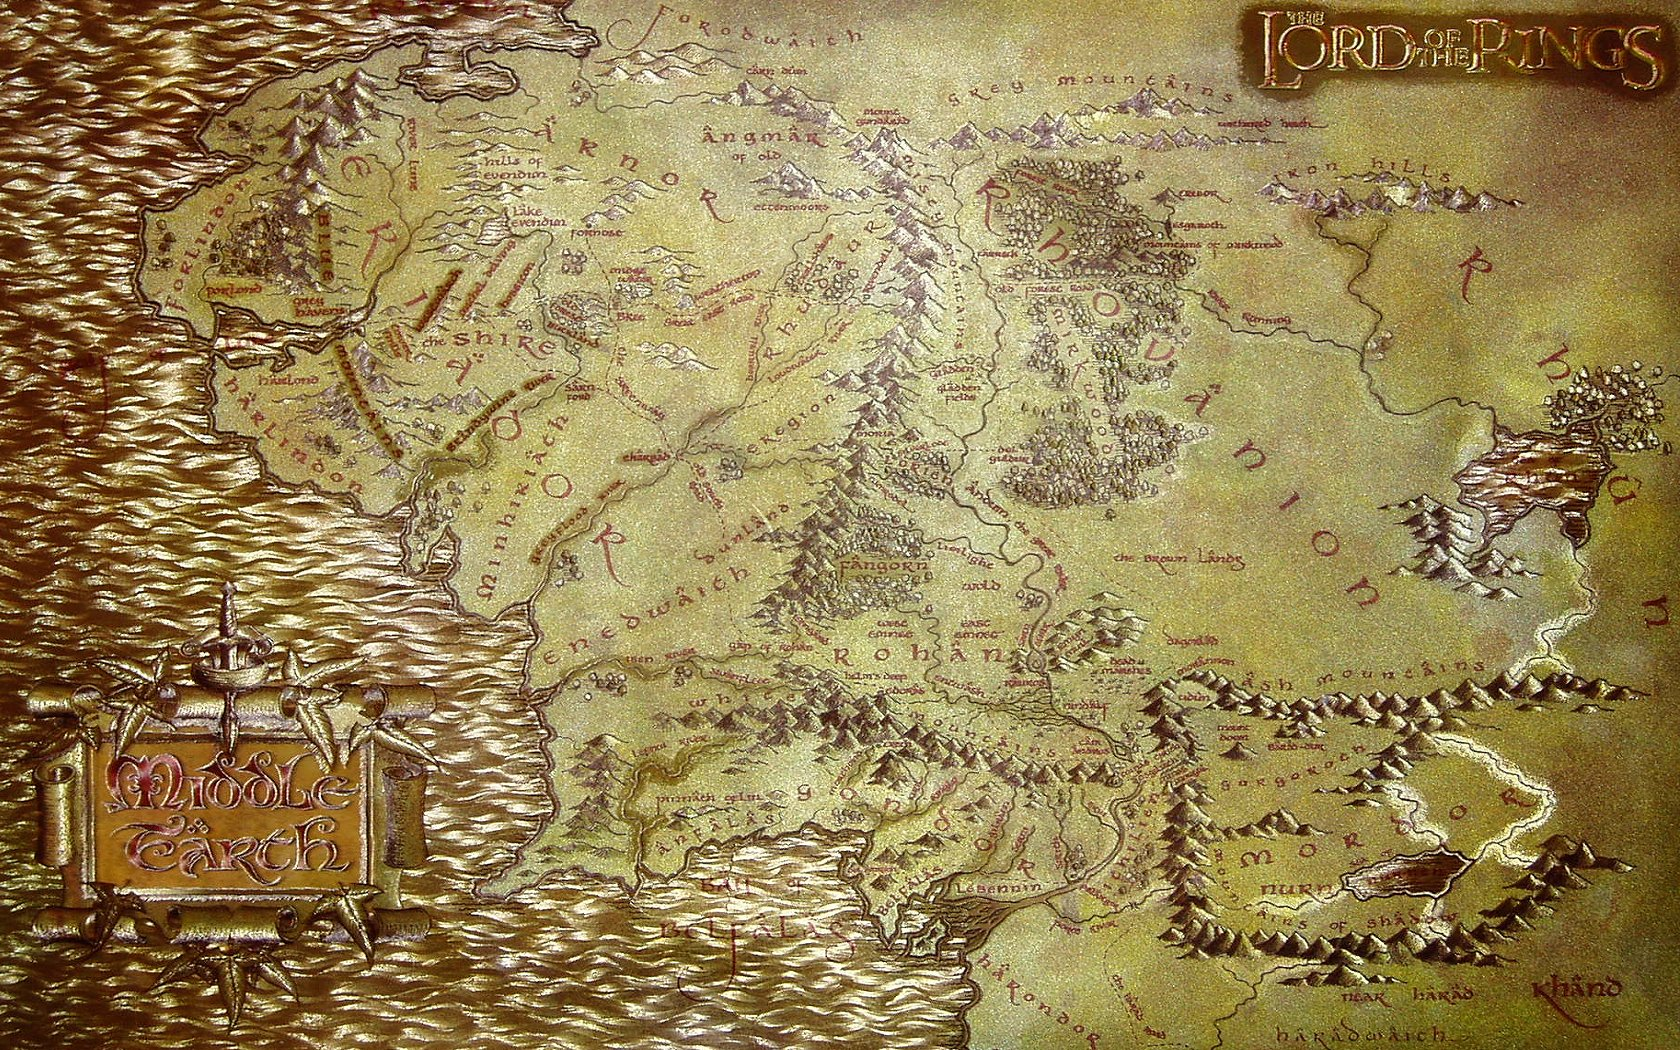 earth the lord of the rings maps wallpaper HQ WALLPAPER   171335 1680x1050